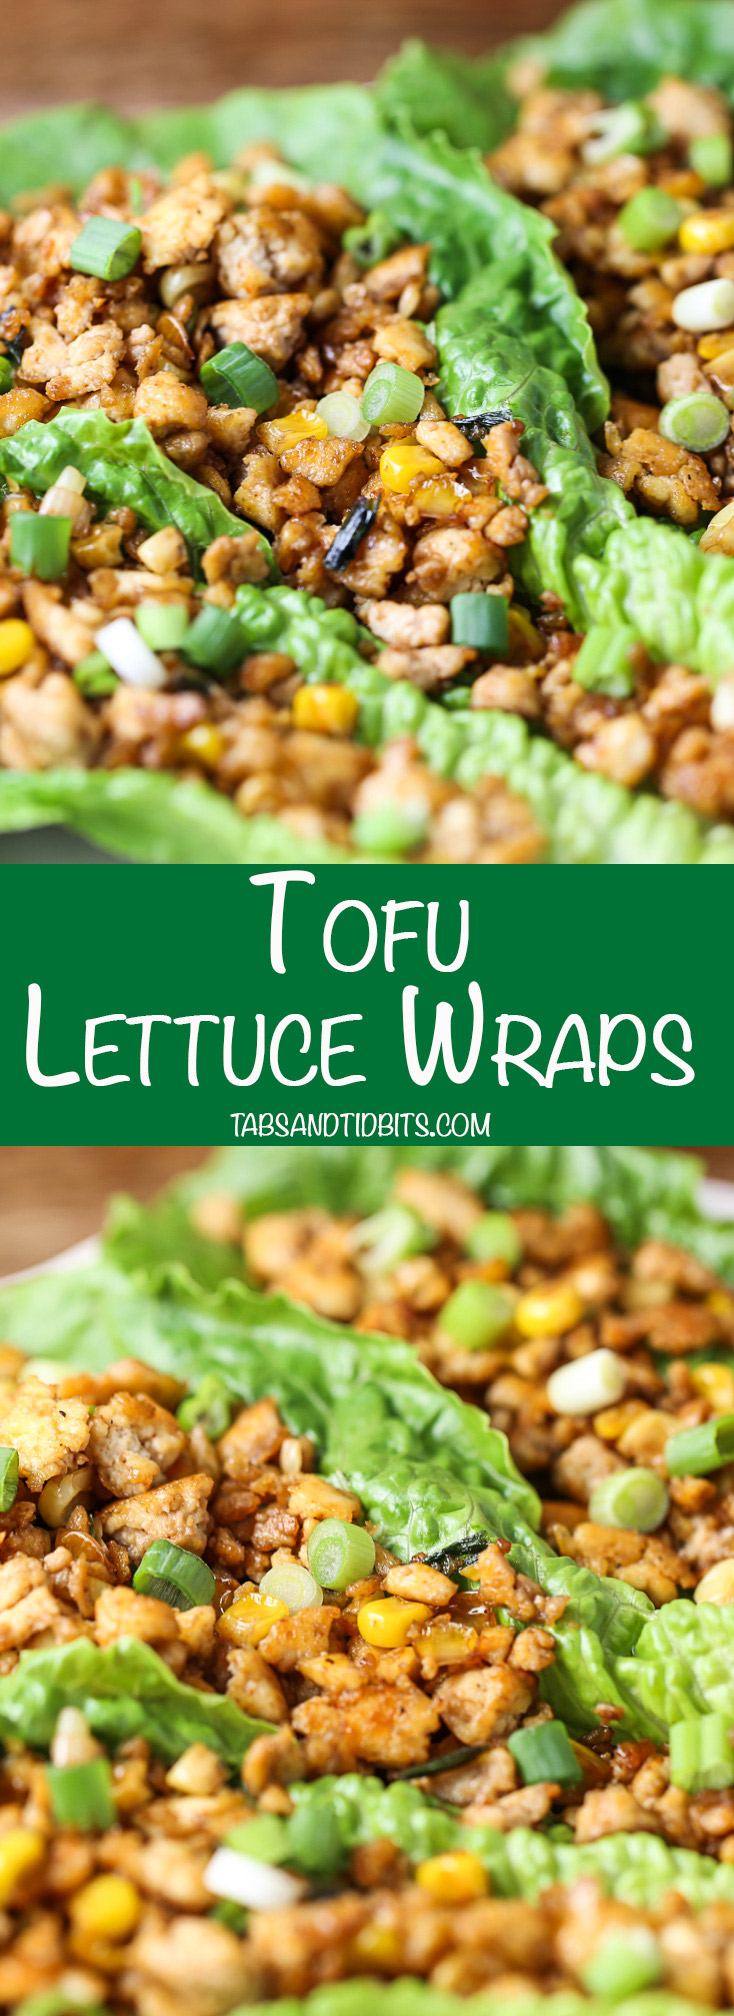 Tofu Lettuce Wraps - Flavor-filled pieces of tofu, corn, and green onions with a little spicy kick and Asian twist wrapped in cool and crispy romaine hearts.